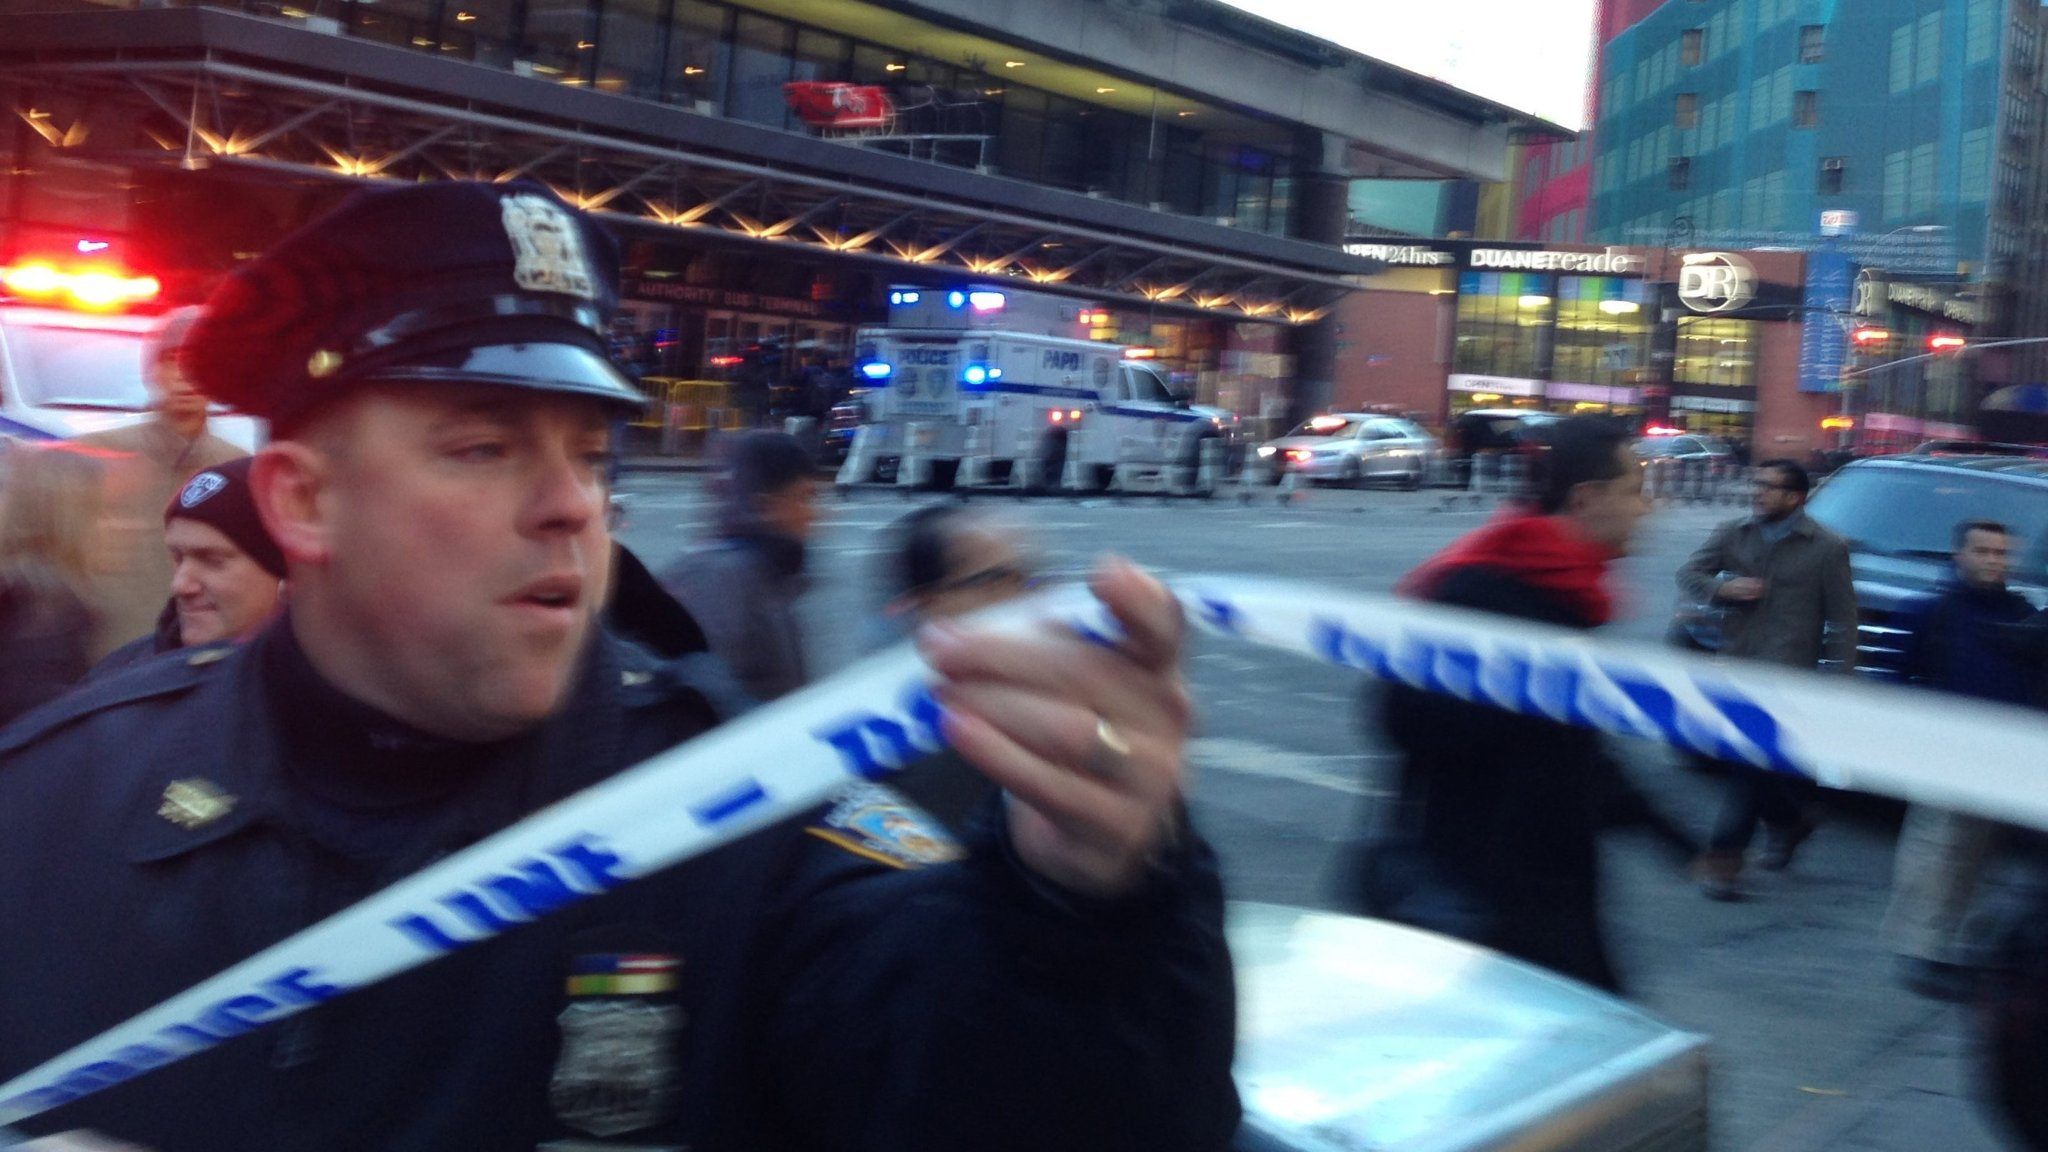 New York transport hub hit by explosion during rush hour